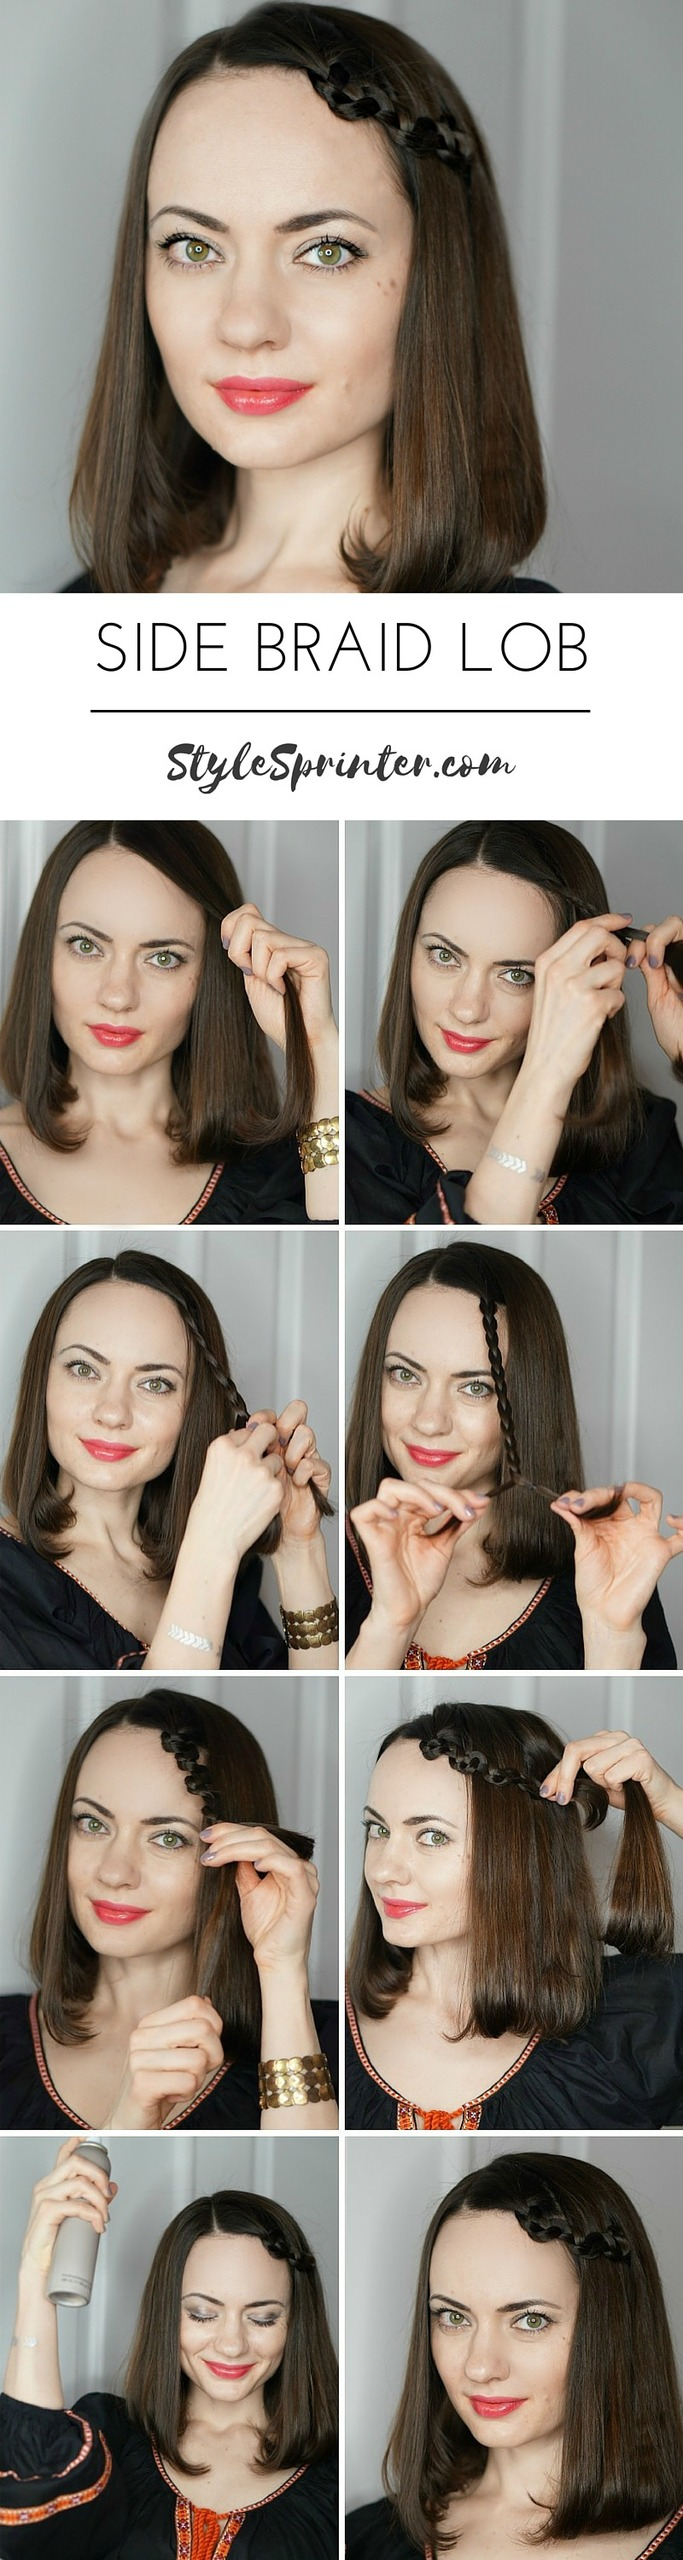 Side Slide-Up Braid Tutorial: http://stylesprinter.com/two-easy-ways-to-style-a-lob/ #hairstyle #bbloggers #hair